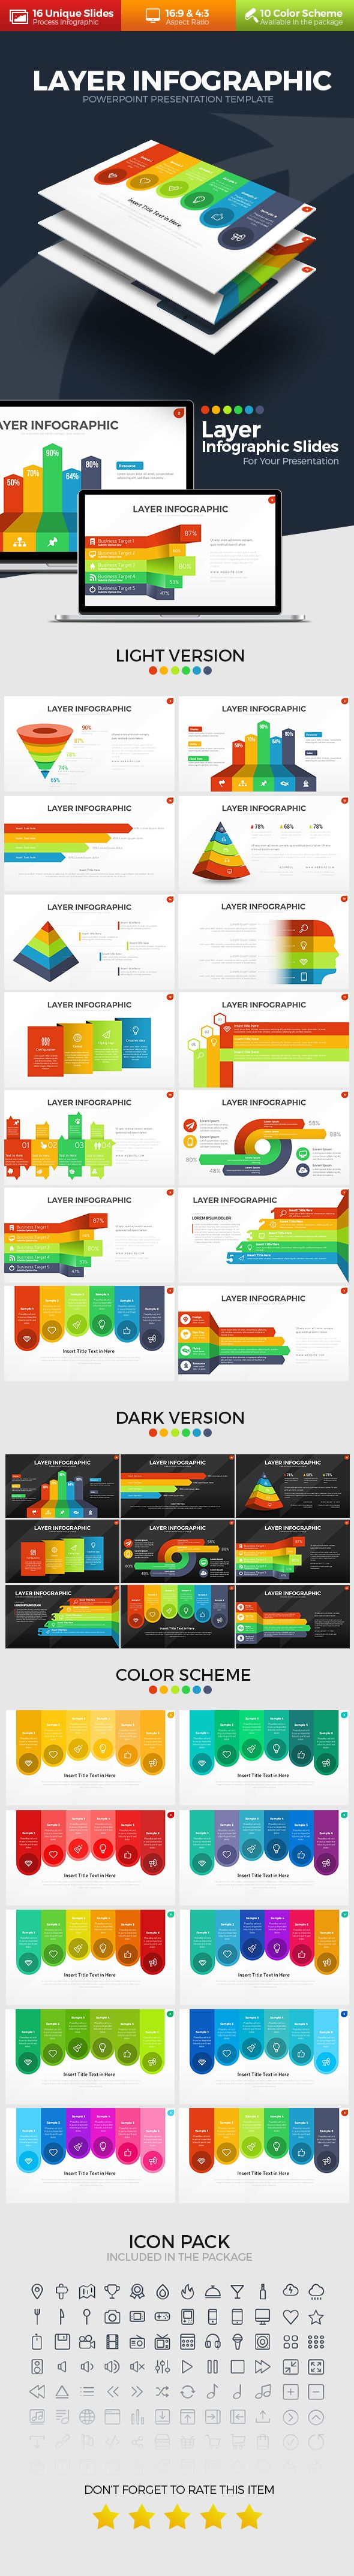 Layer Infographic PowerPoint Template. Download here: https://graphicriver.net/item/layer-infographic-powerpoint-template/17535151?ref=ksioks